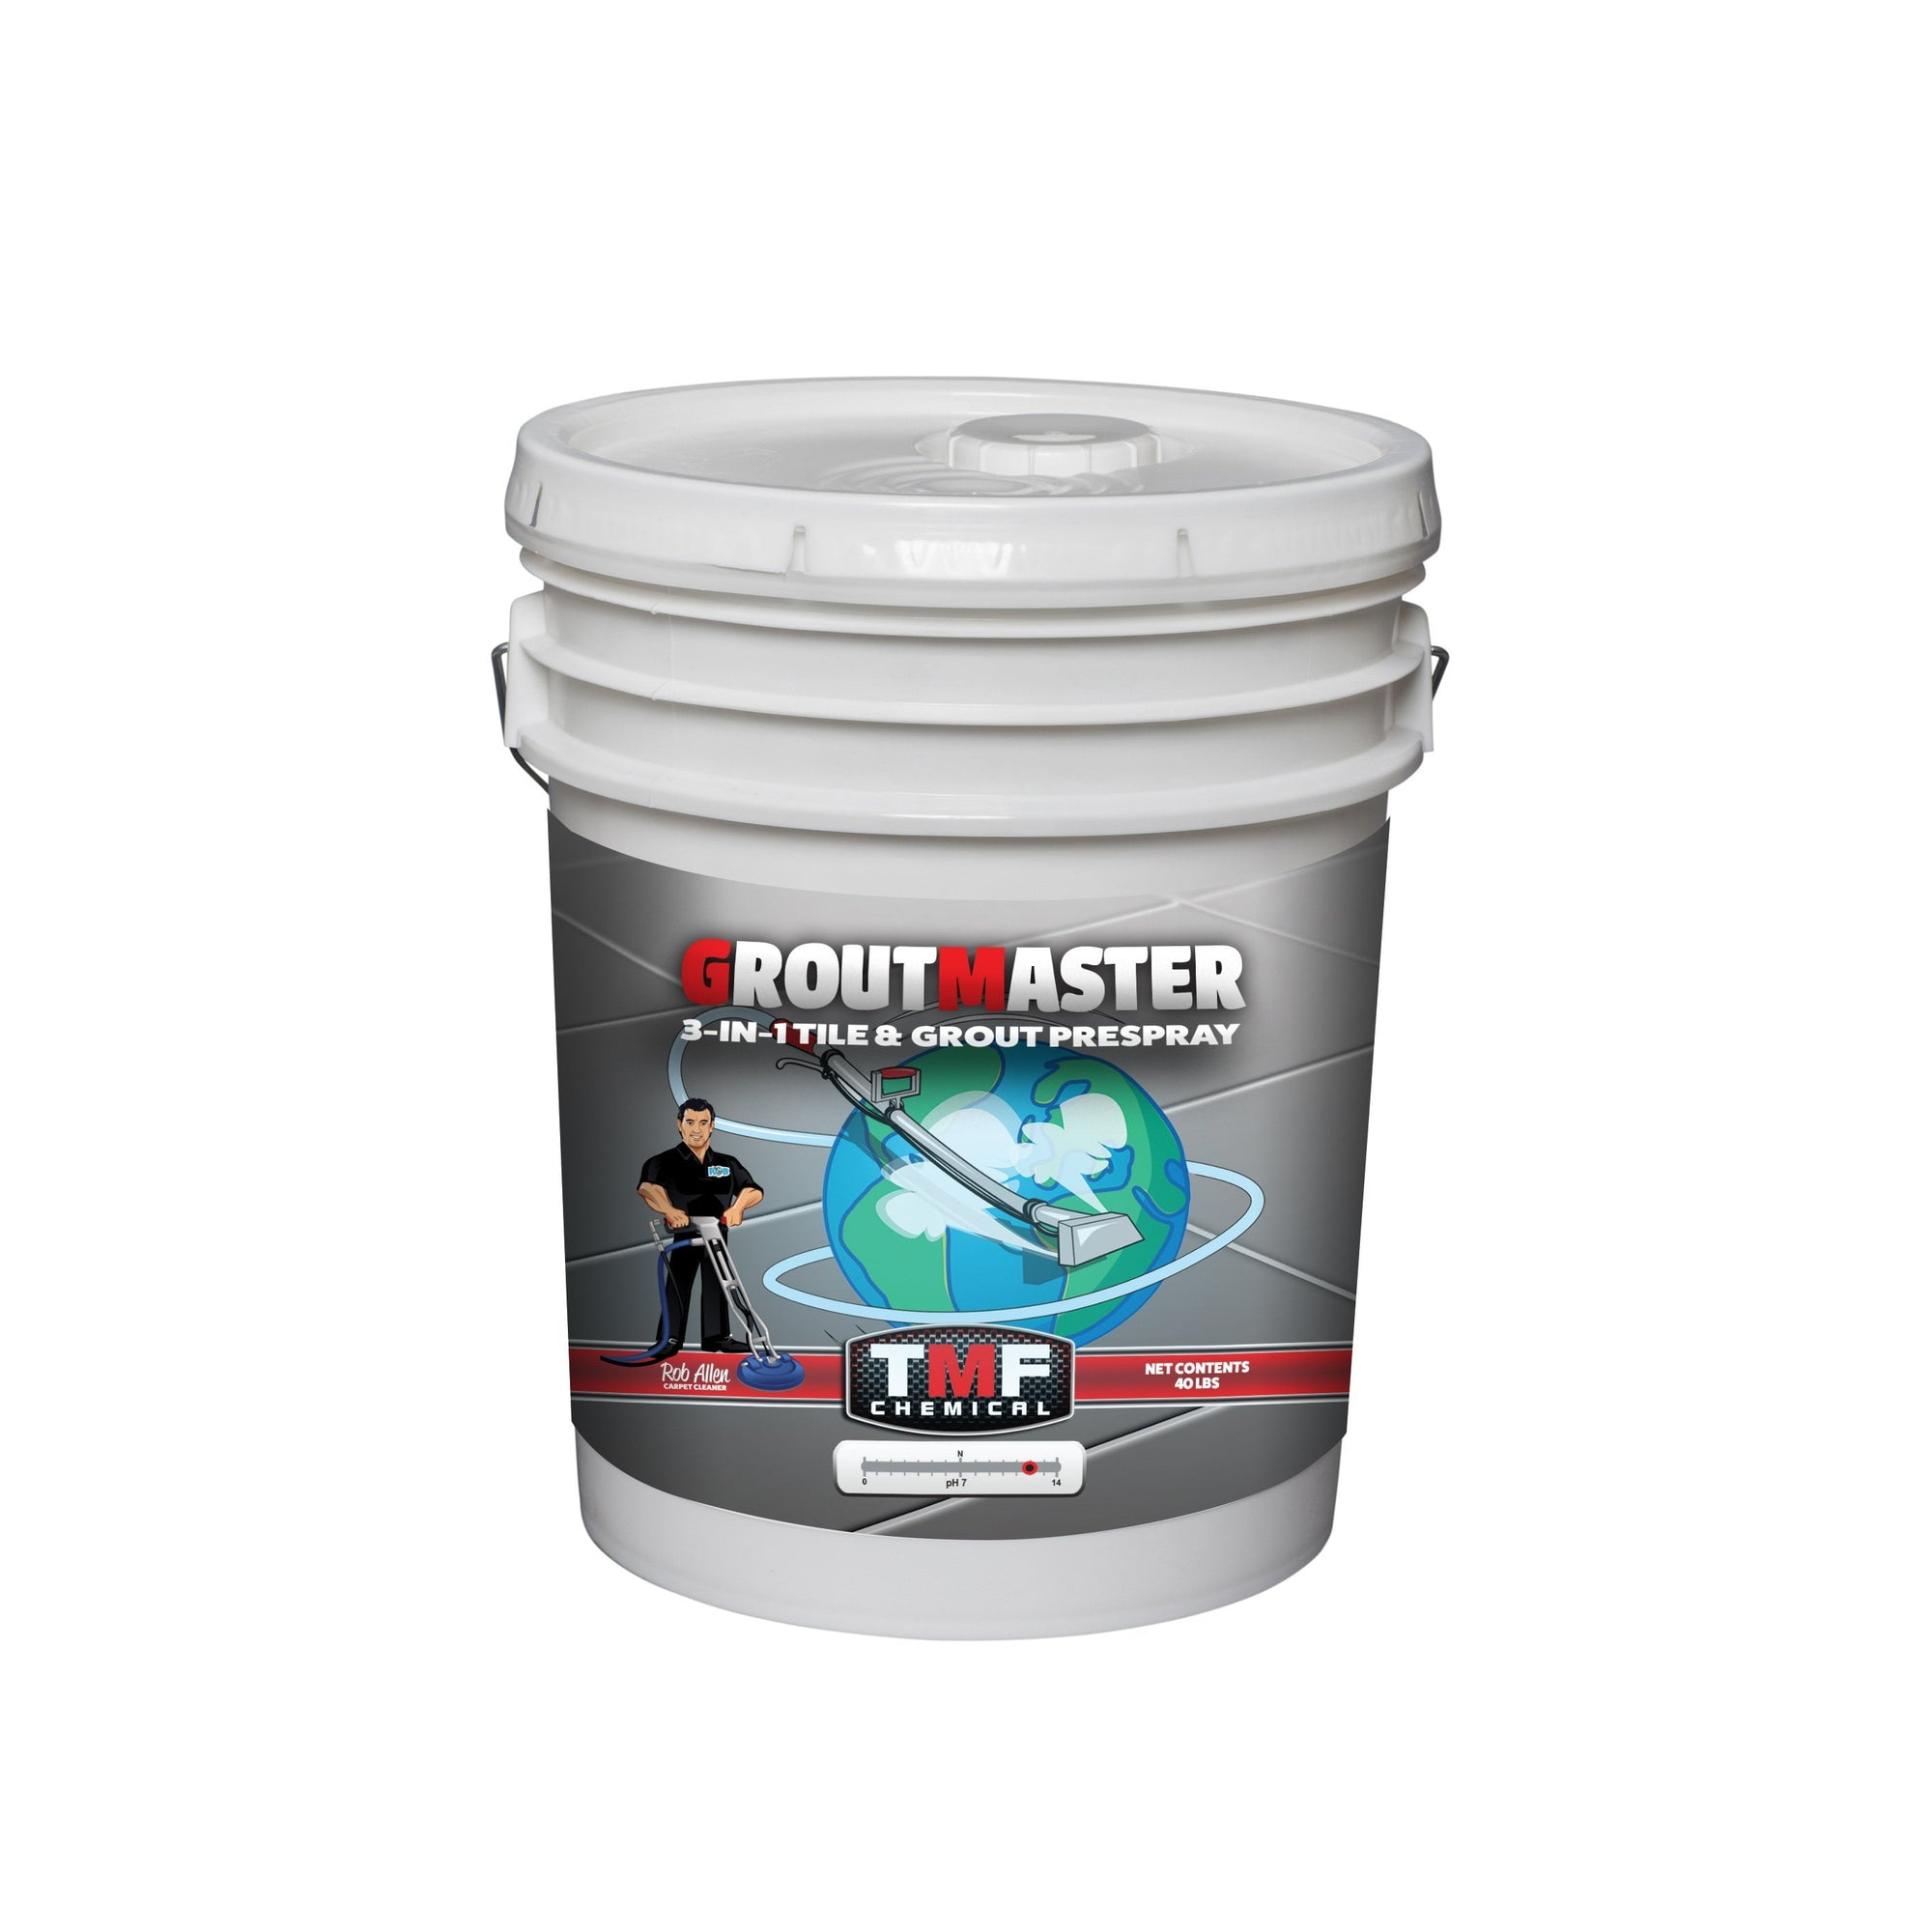 Groutmaster PAIL - TMF Store: Carpet Cleaning Equipment & Chemicals from TruckMountForums